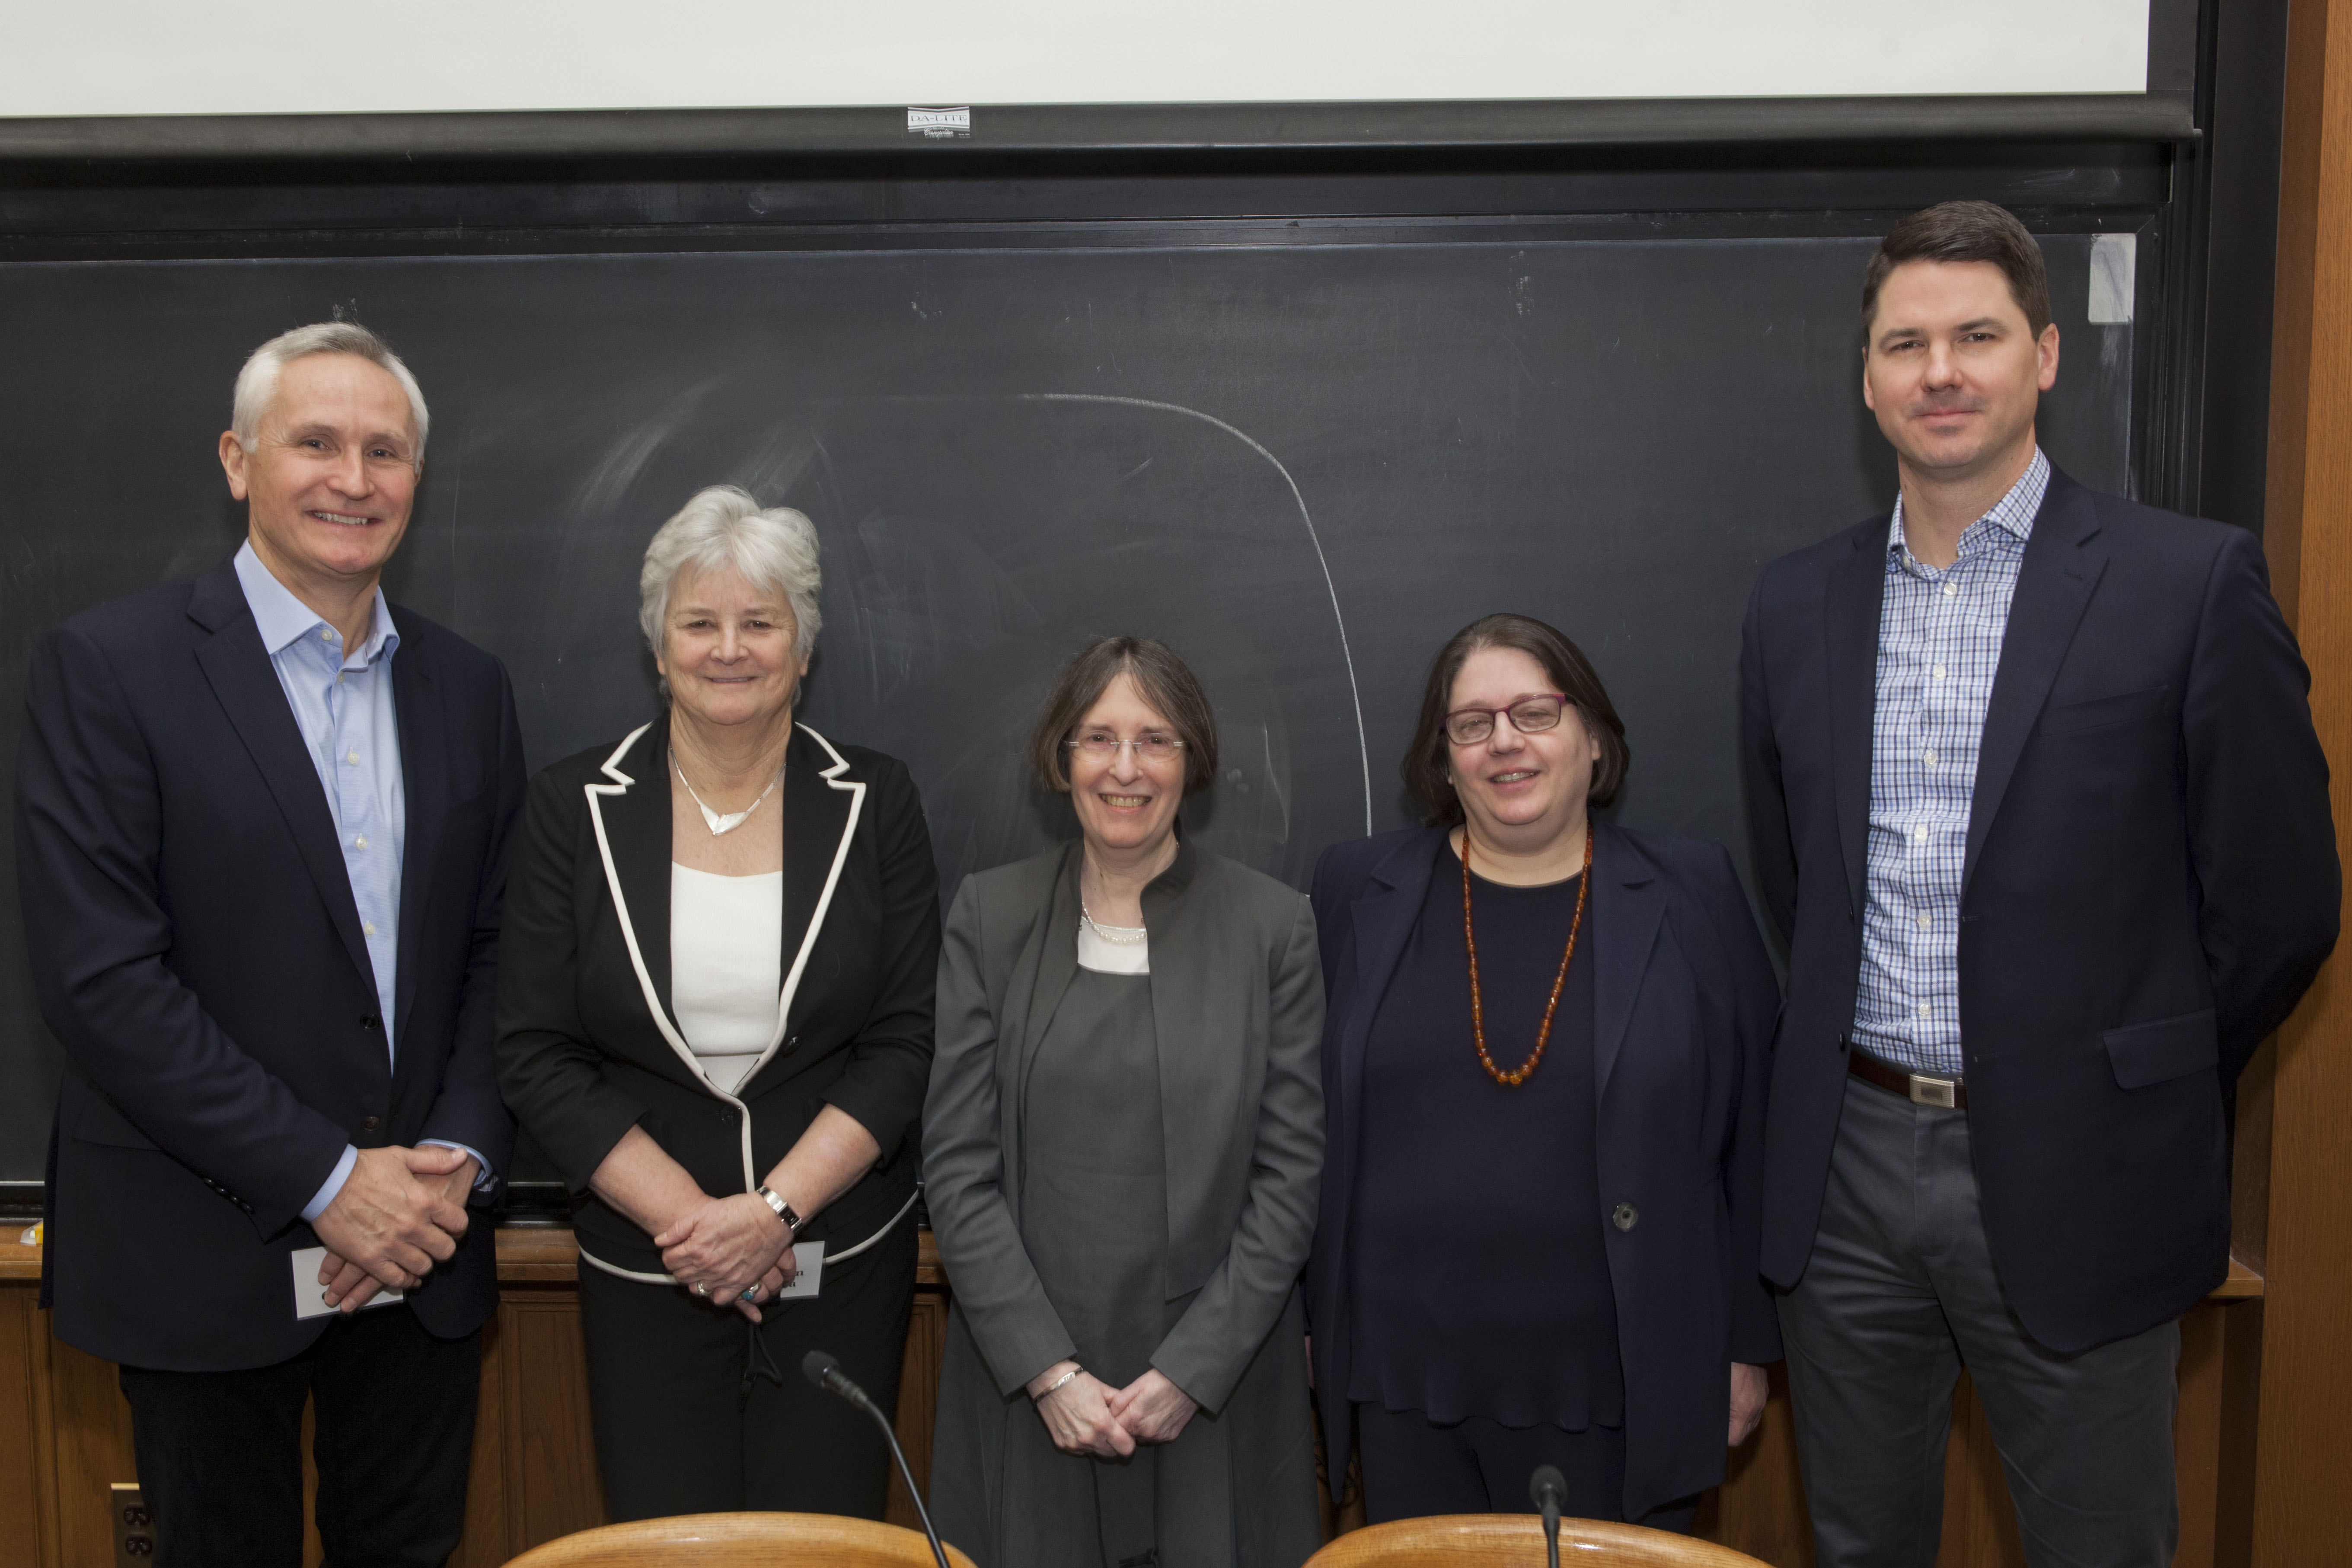 Chris Church, Cornell Mgmt. Prof. Maureen O'Hara, YLS Prof. and Center Dir. Roberta Romano '80, Rebecca Simmons, and Mark Wetjen